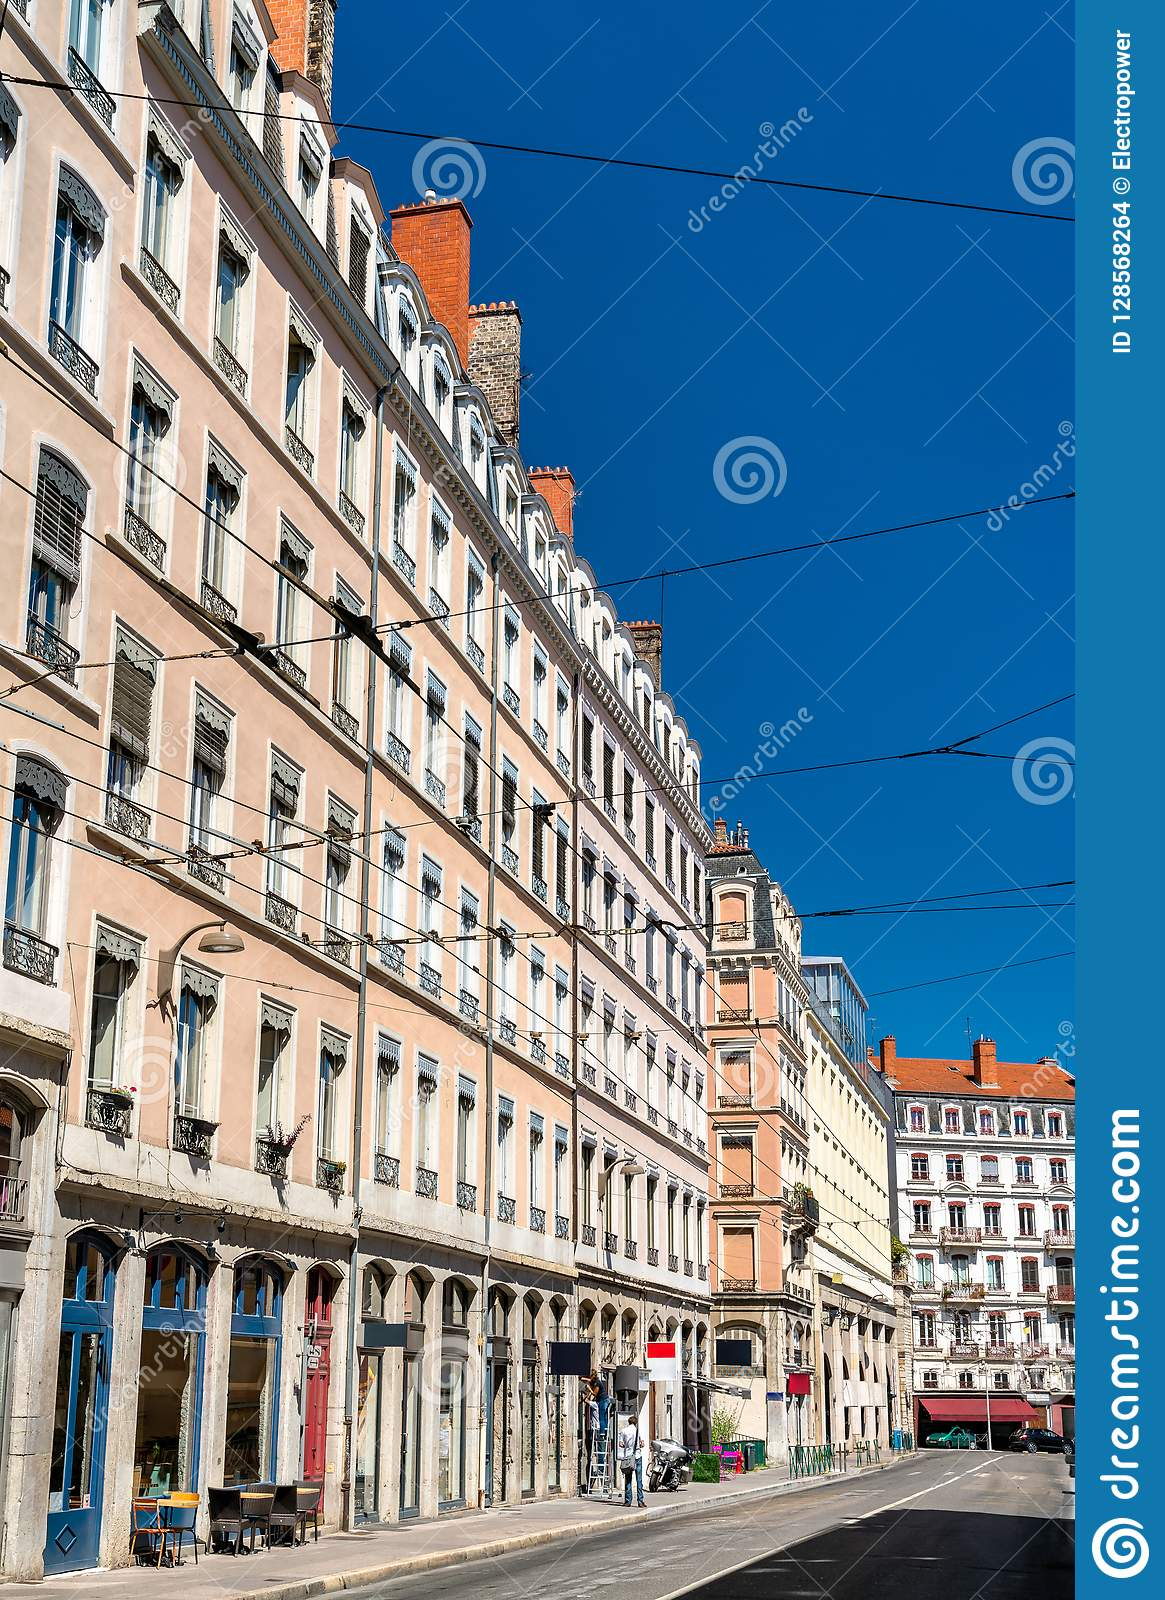 French Architecture In The 1st Arrondissement Of Lyon Editorial ...